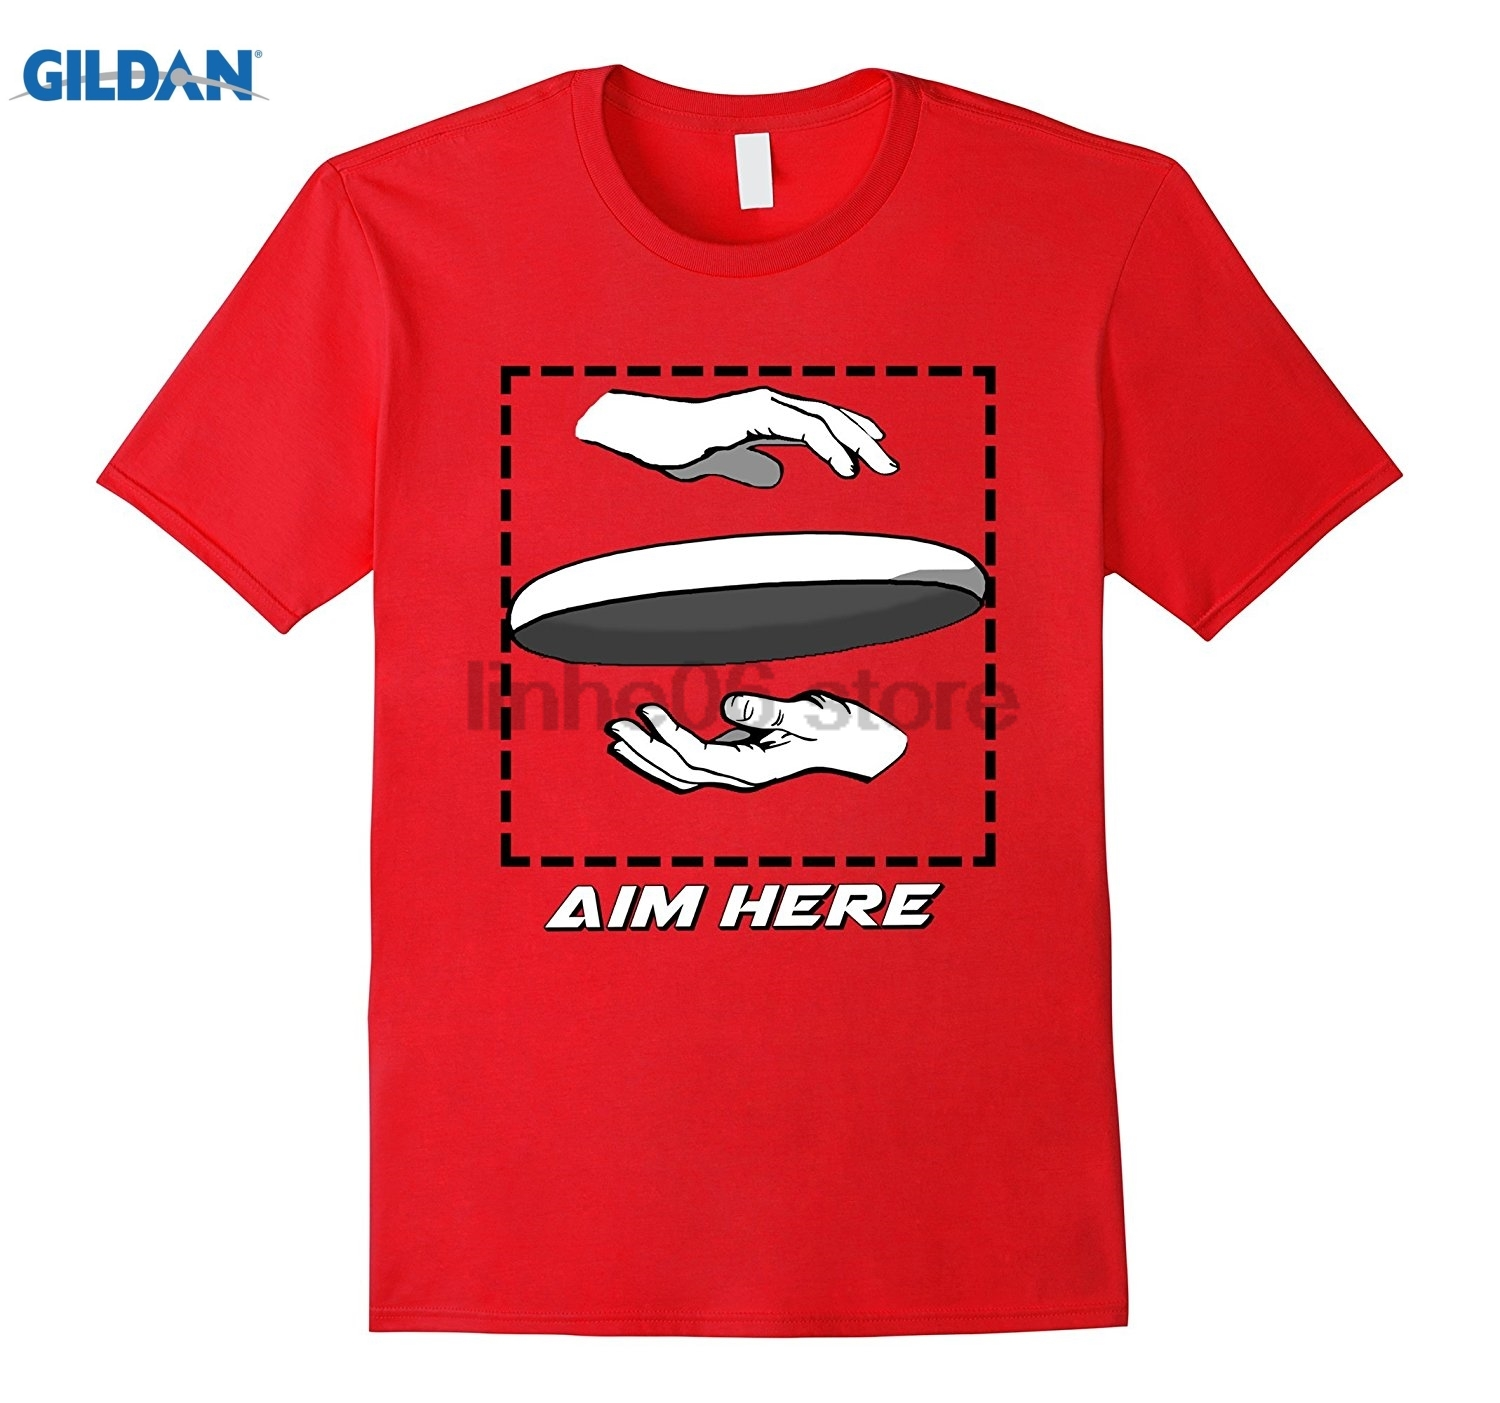 GILDAN Aim Here. Ultimate Frisbee Shirt Womens T-shirt ...